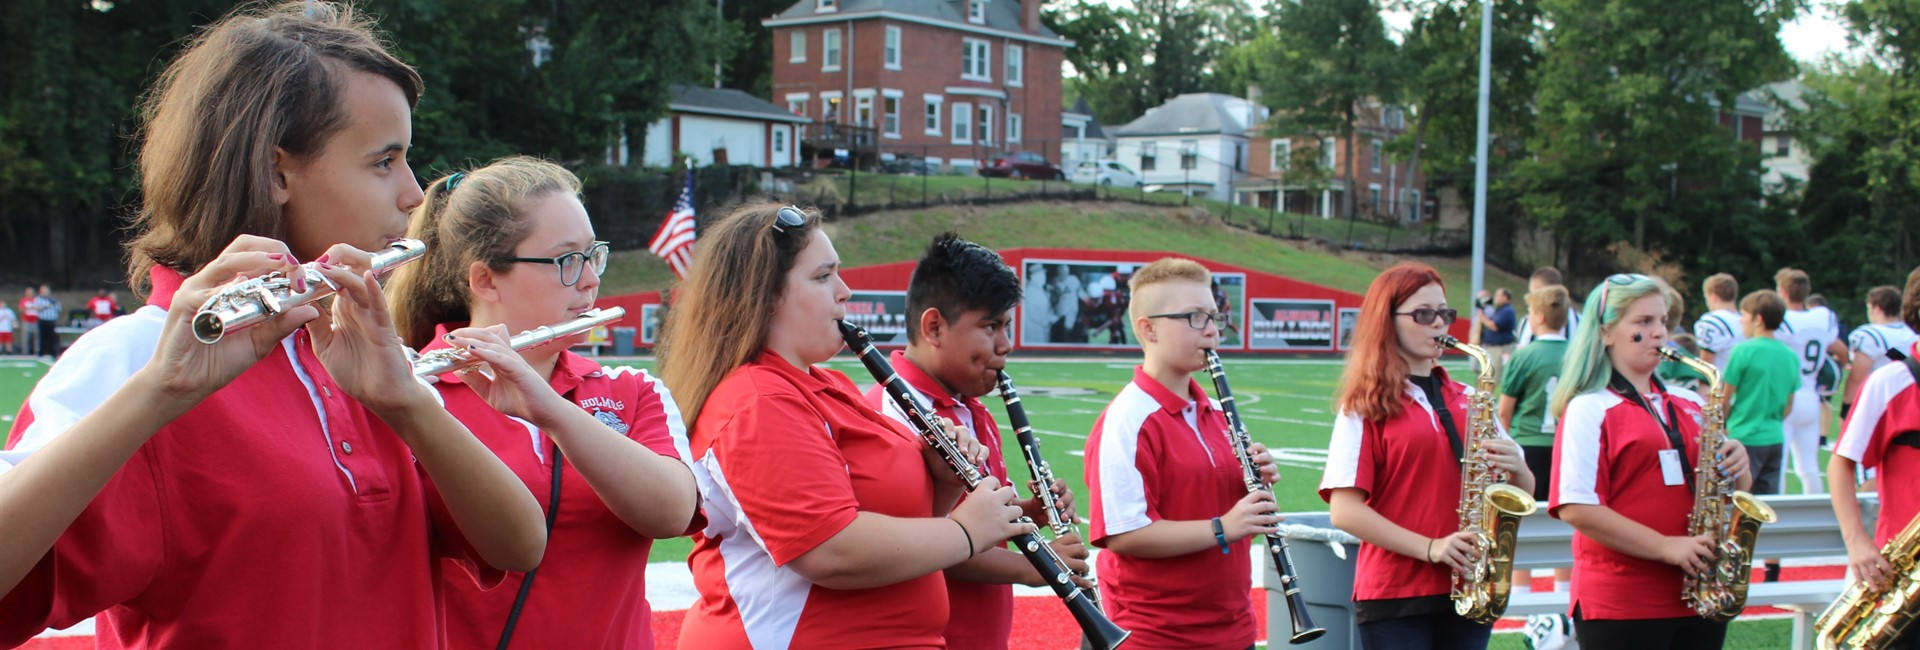 Holmes High School band plays the national anthem before the first football game.